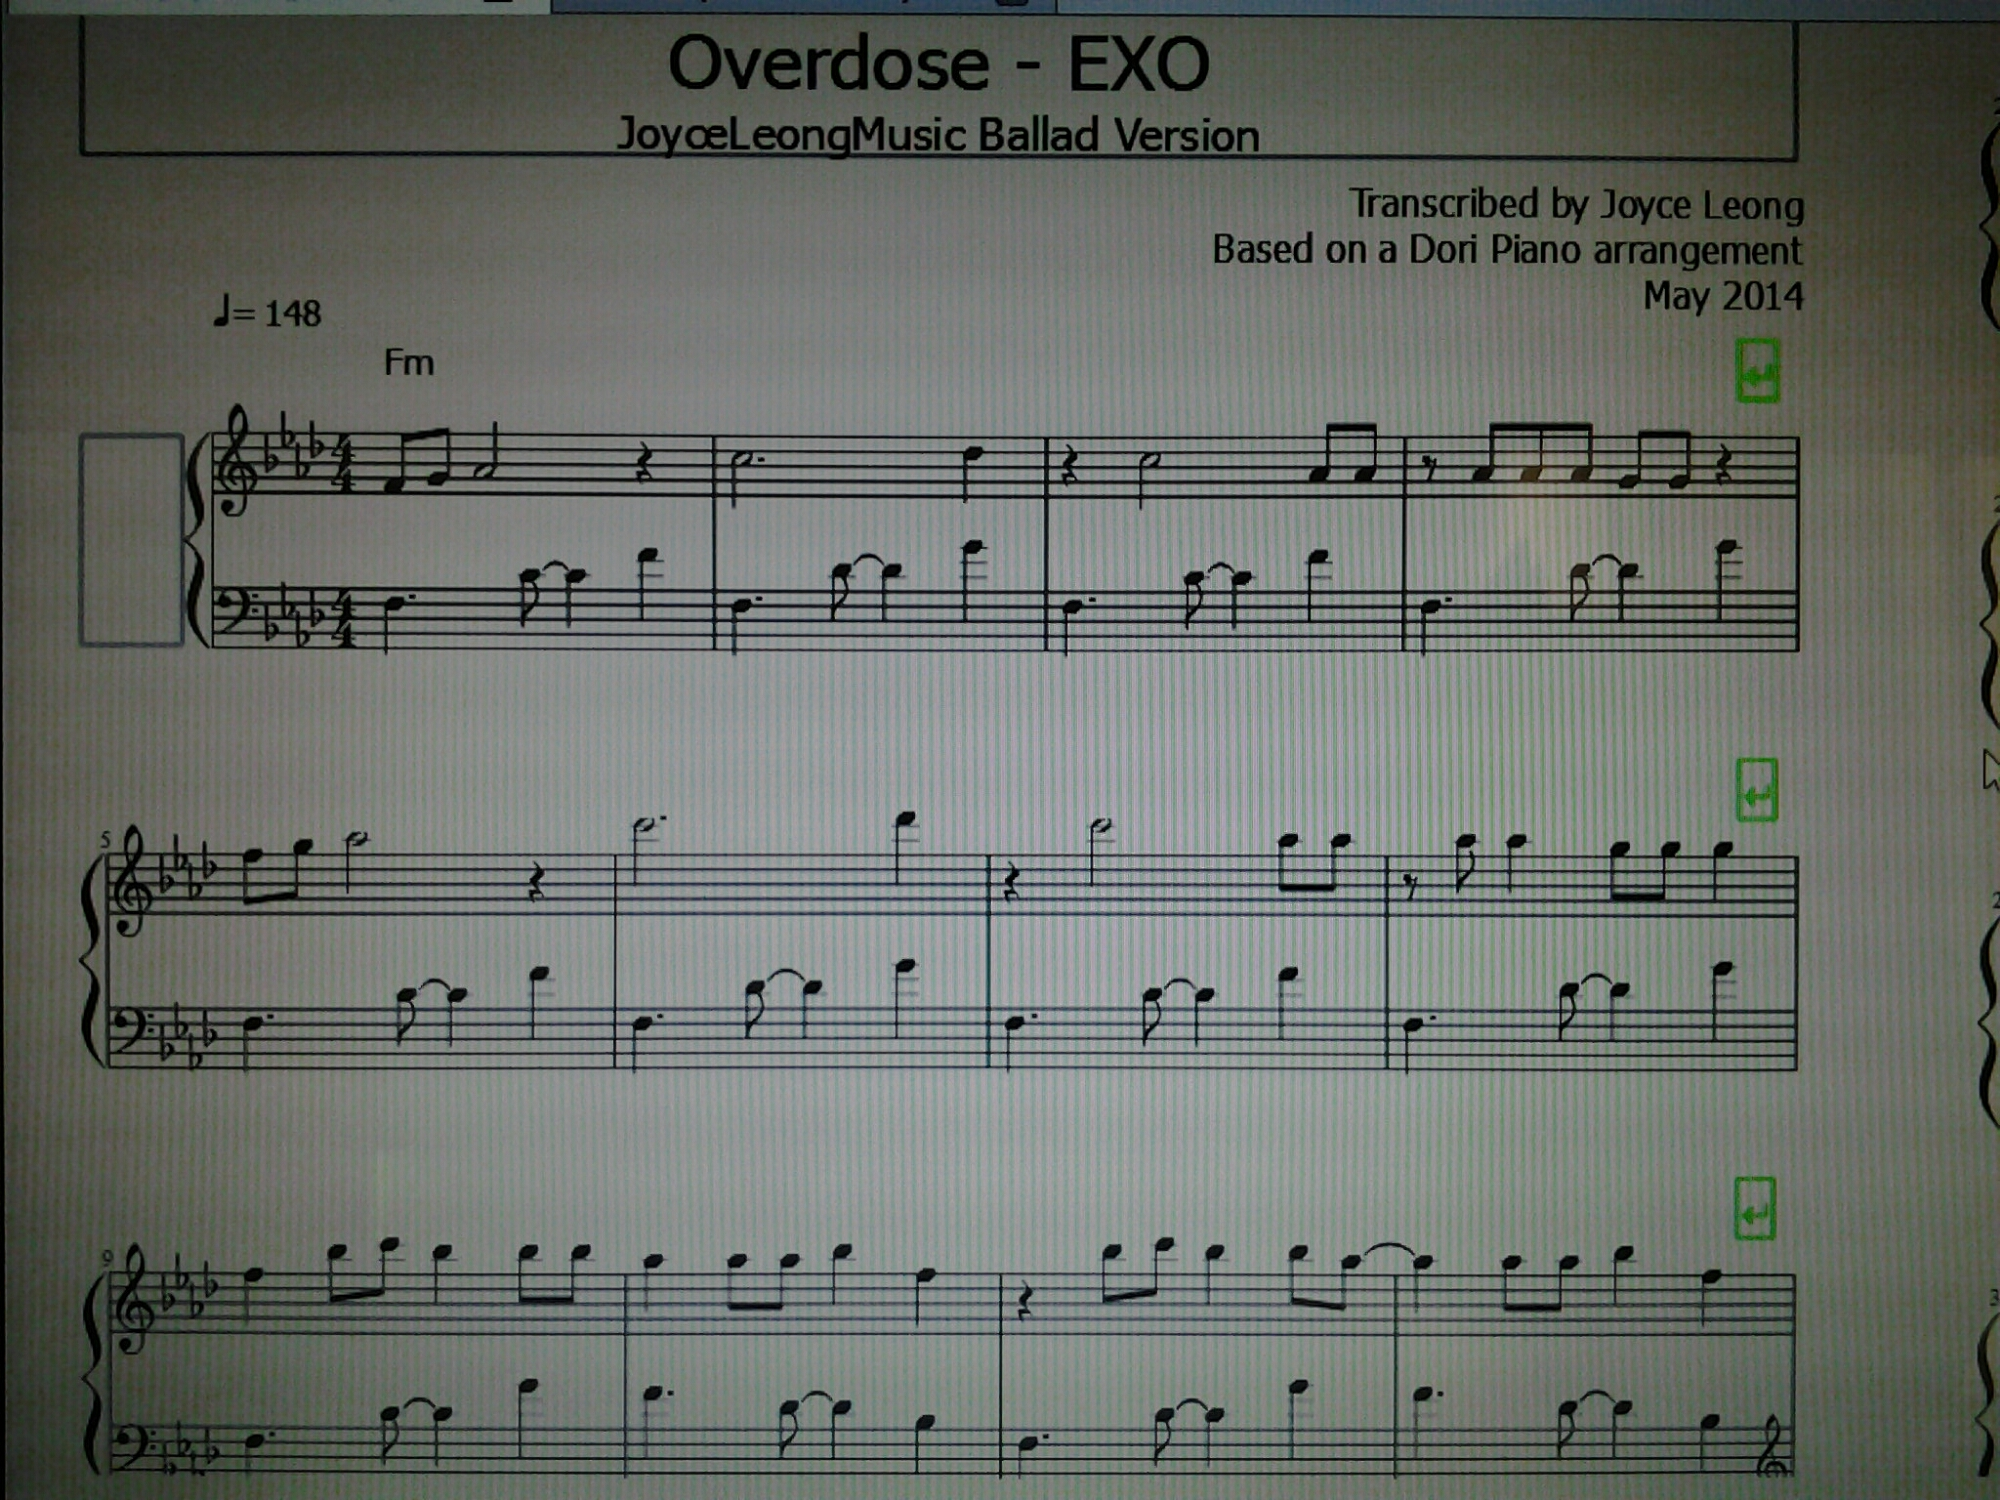 Just finished the ballad version of Overdose 🙂 Practising it now ...